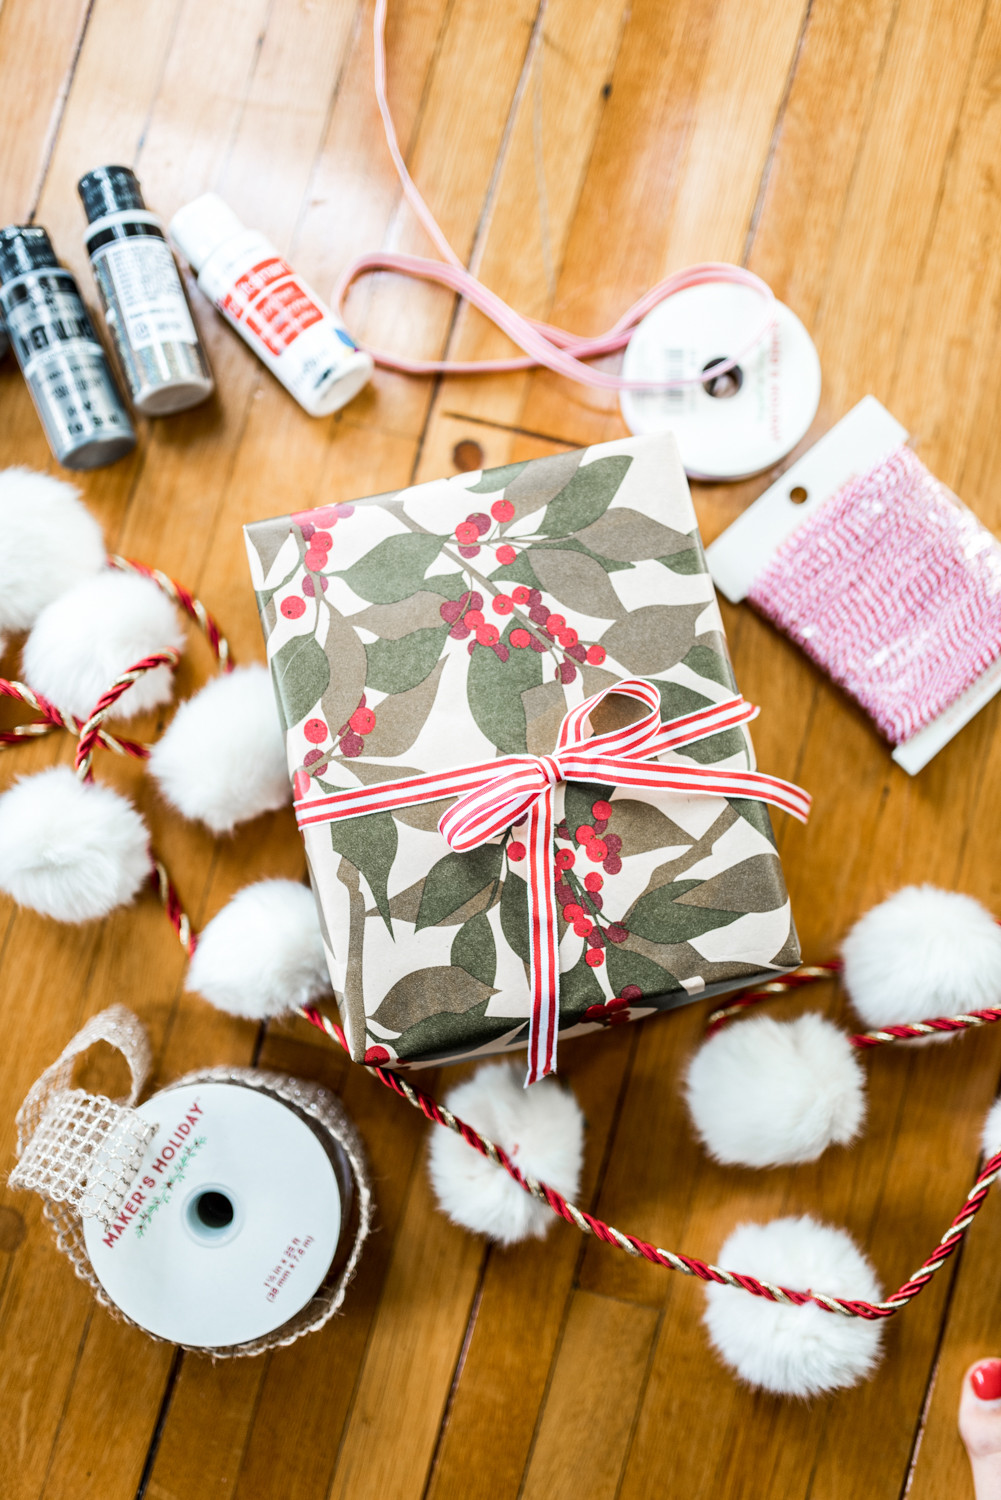 Best ideas about DIY Wrapping Paper . Save or Pin Holiday Gift Wrap DIY Ideas Now.